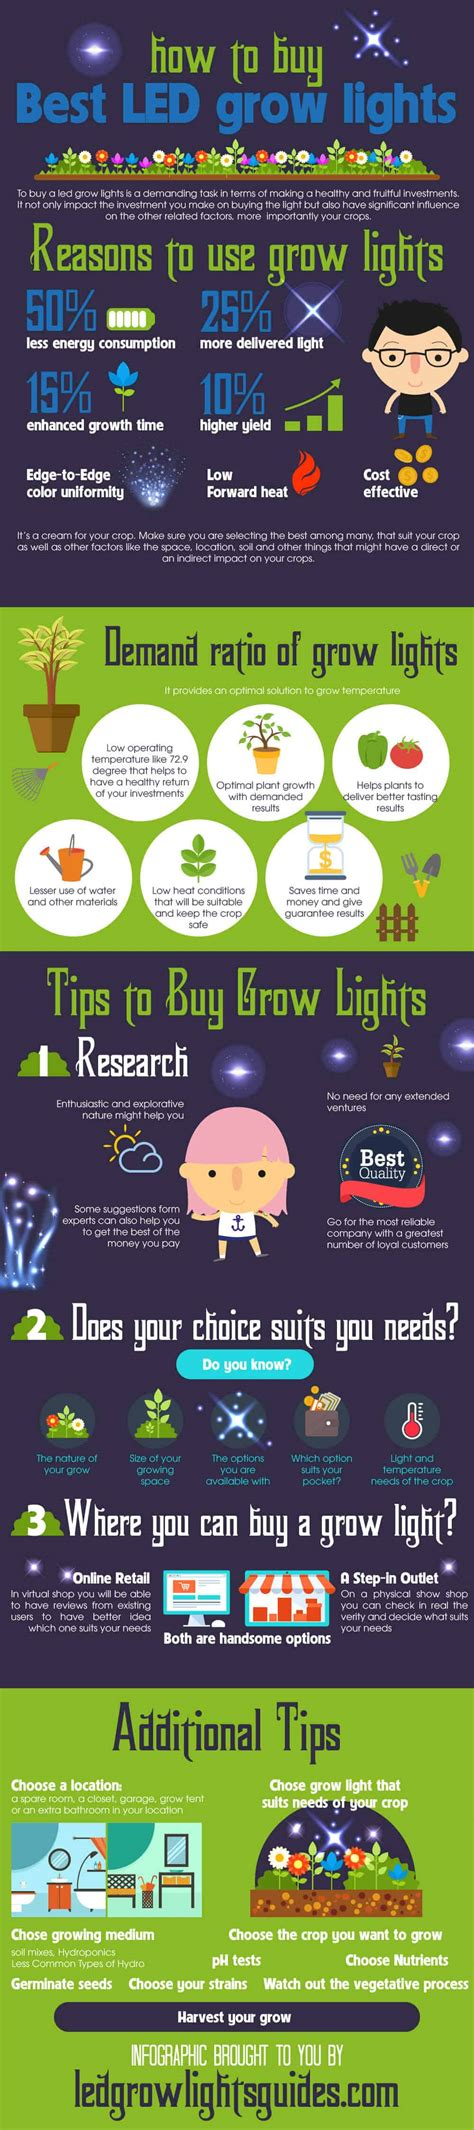 best led grow light for the money best led grow lights reviews 2016 top for money